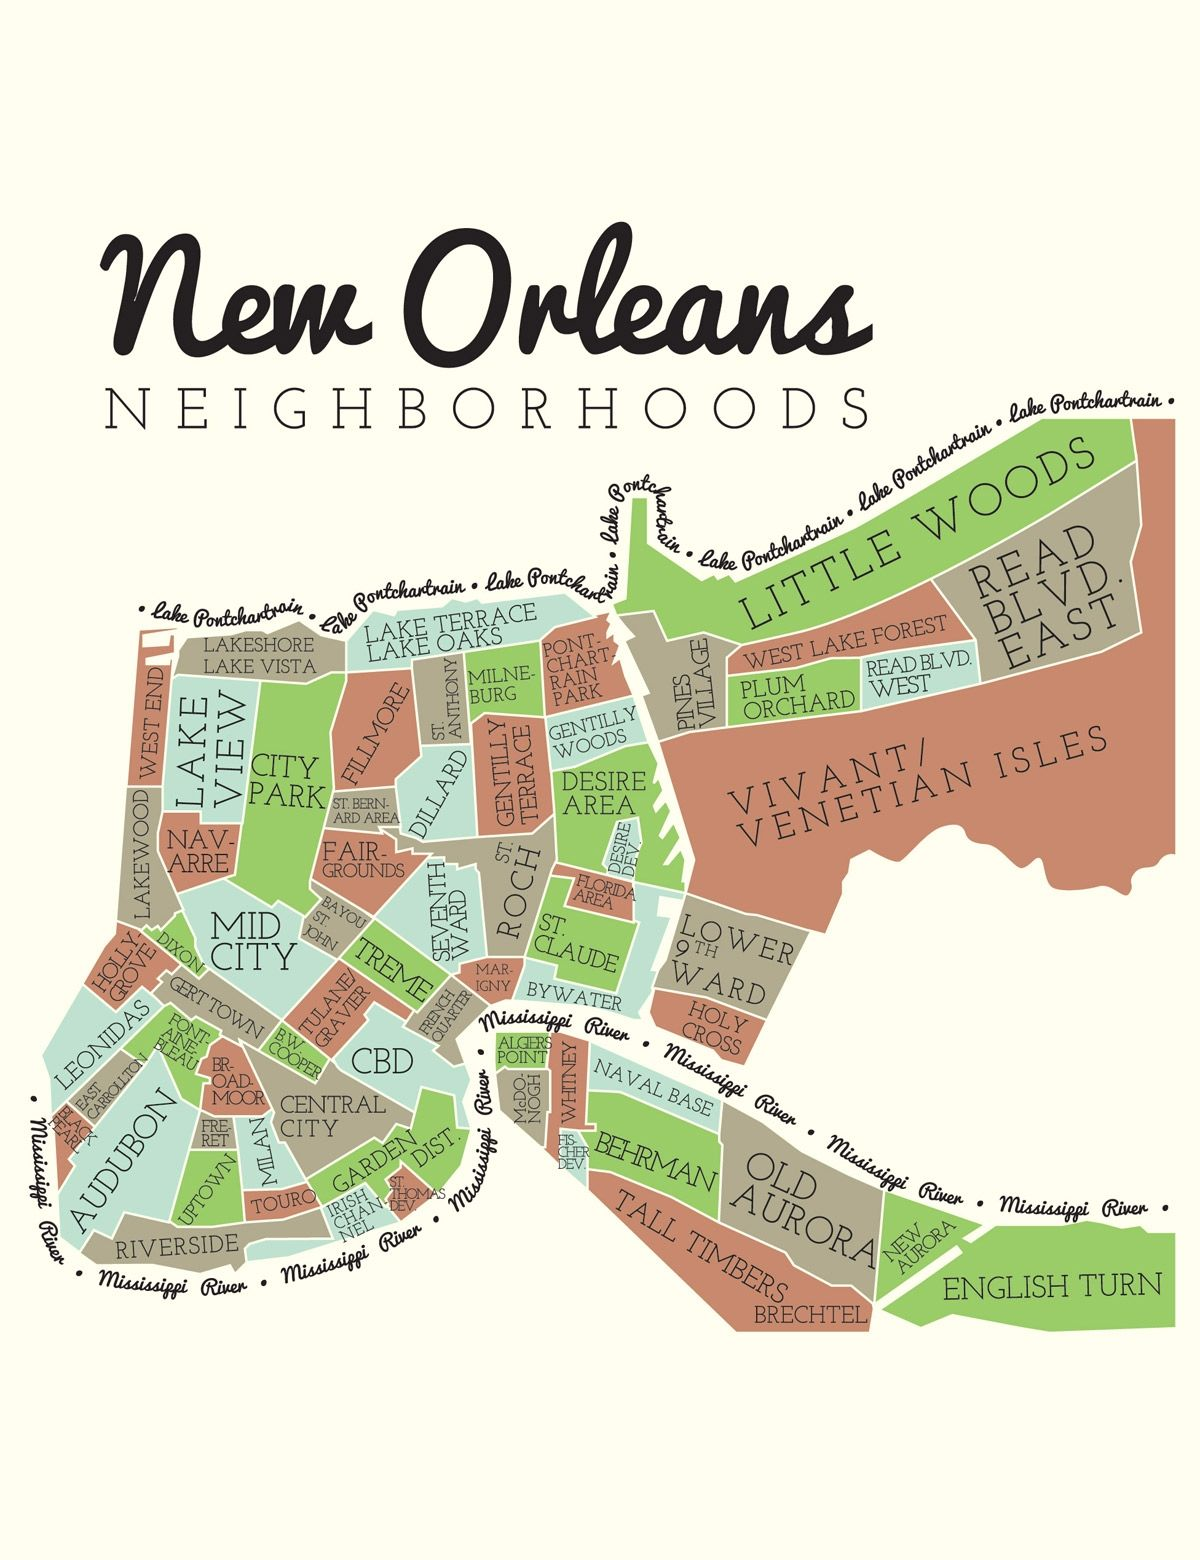 New Orleans Neighborhoods Map Stores: Nadeau   Furniture With a Soul in 2019 | Scenery and